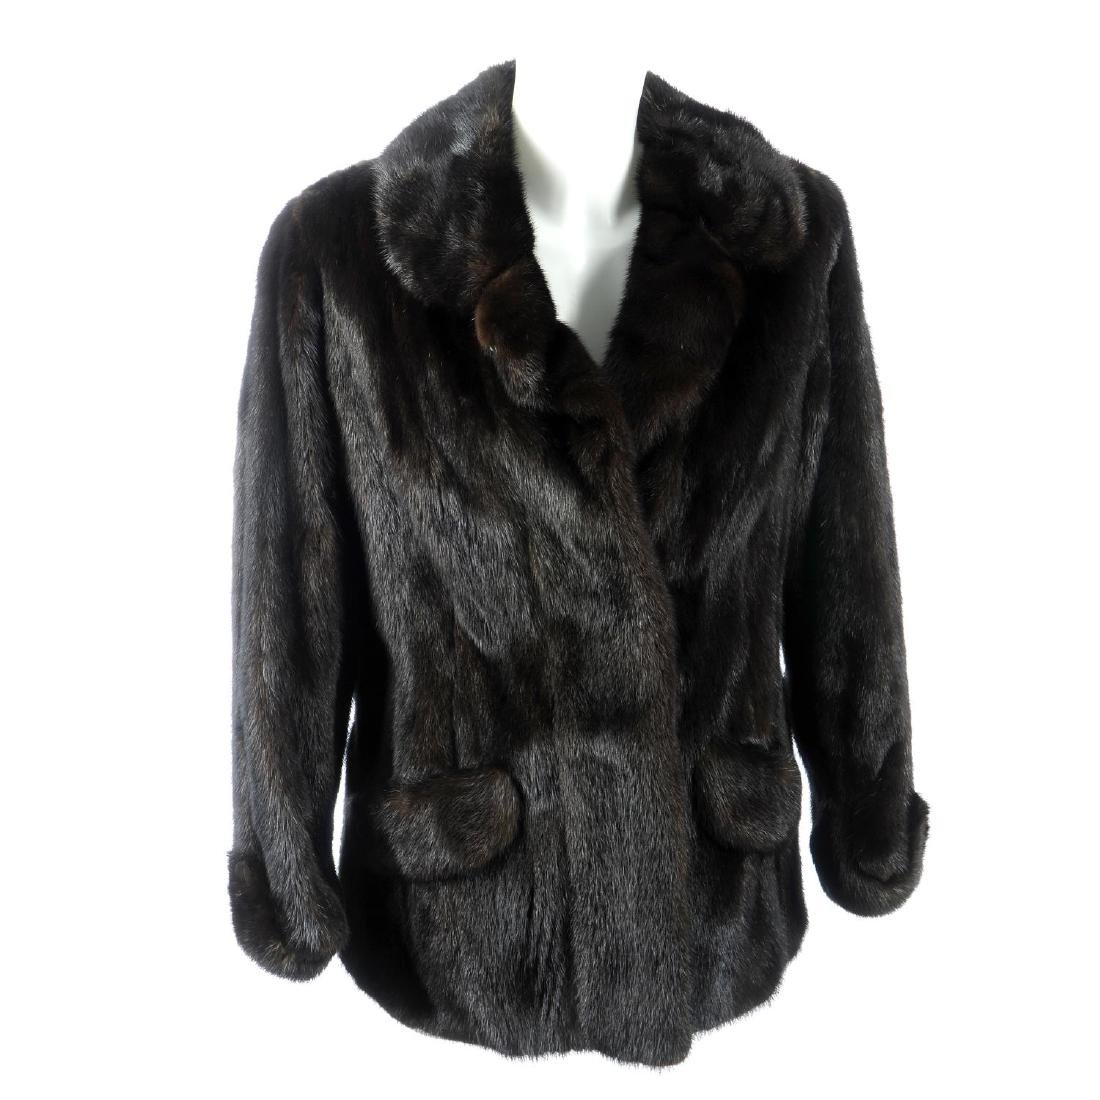 A dark ranch mink jacket. Featuring a notched lapel